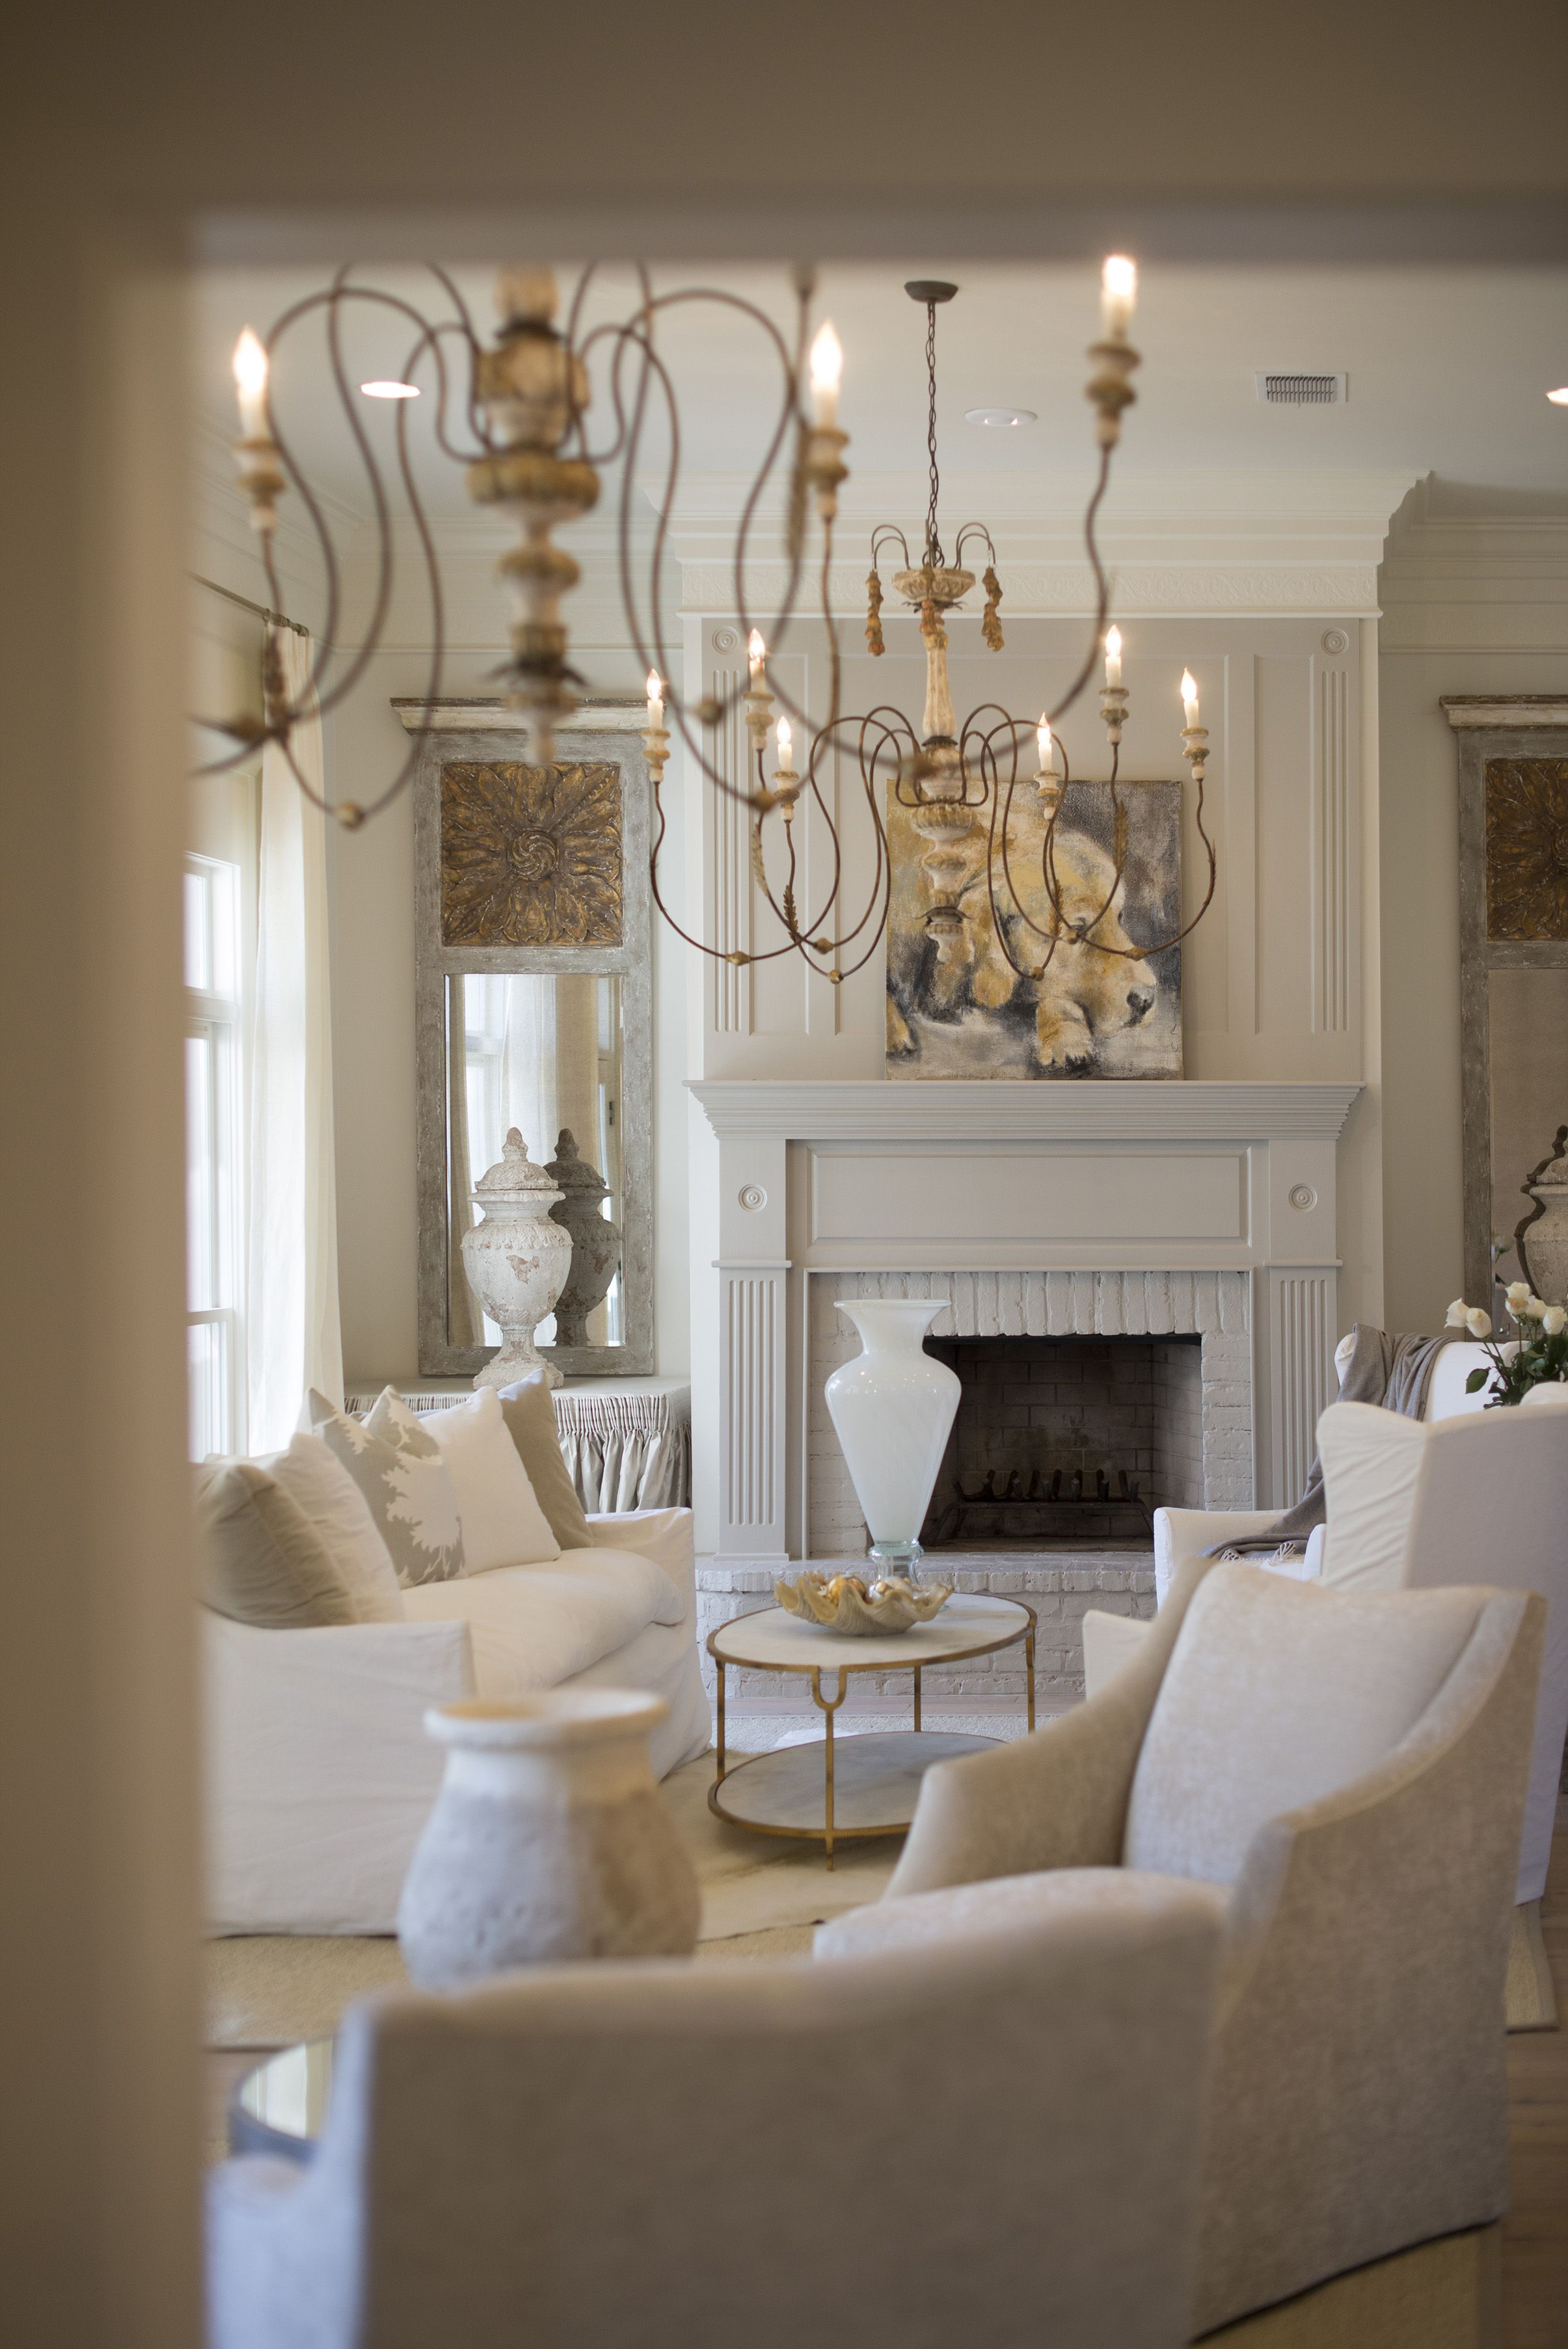 Shades Of White With Images Chandelier In Living Room French